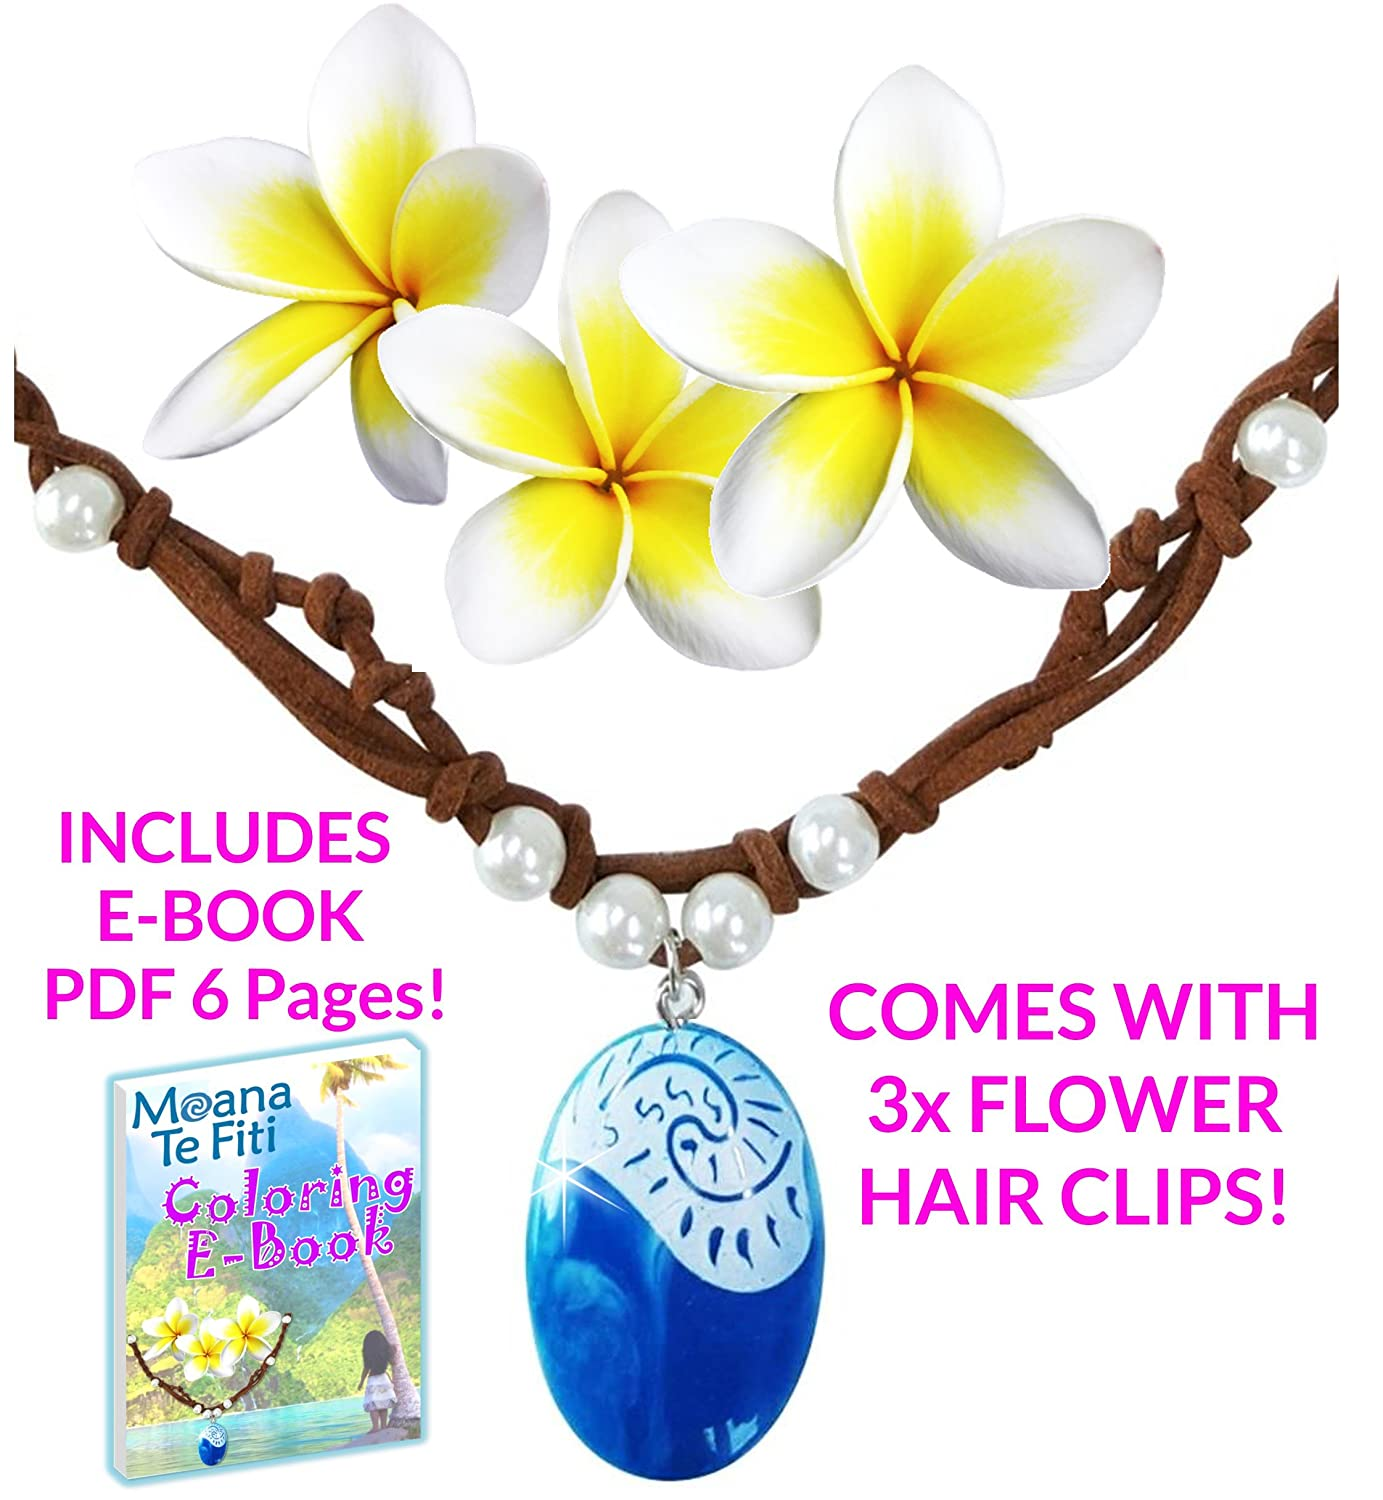 Moana Necklace Disney Heart Of Te Fiti Costume Accessories Movie Gift For Girls | Includes 3 Flower Hair Clips & E Book | Leather, Pearl, Children Kids Toys Princess Birthday Party Favors Cosplay by Princess Charms